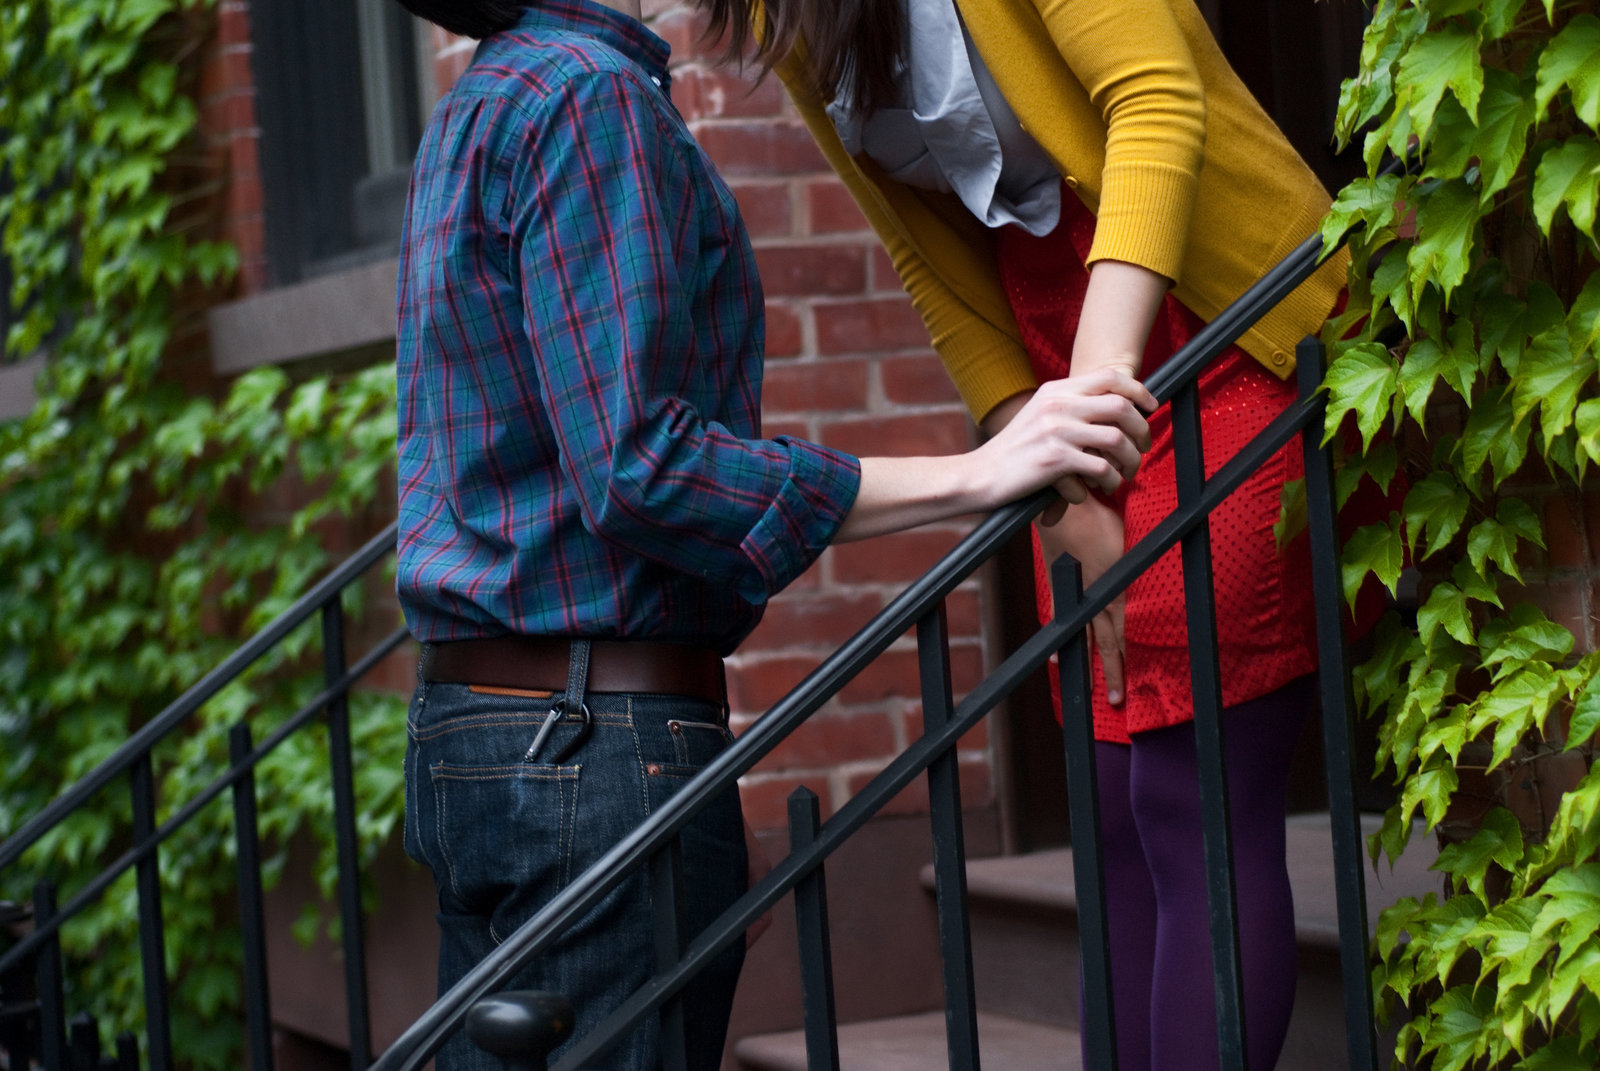 a couple wearing colorful clothes give a goodbye kiss on a nyc apartment stoop